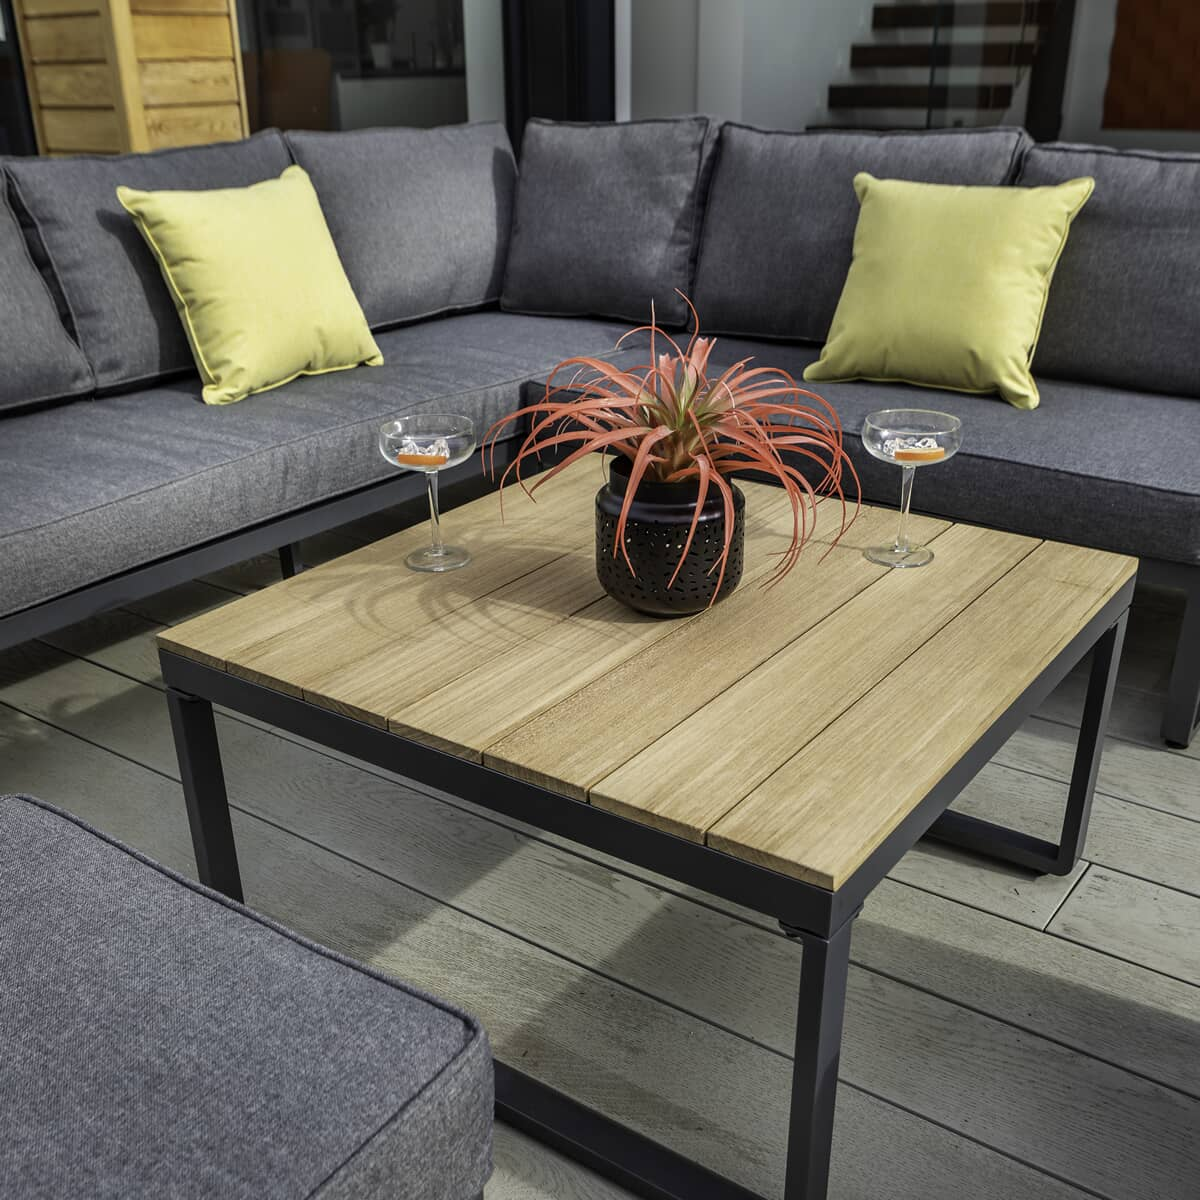 Hartman singapore Garden Furniture